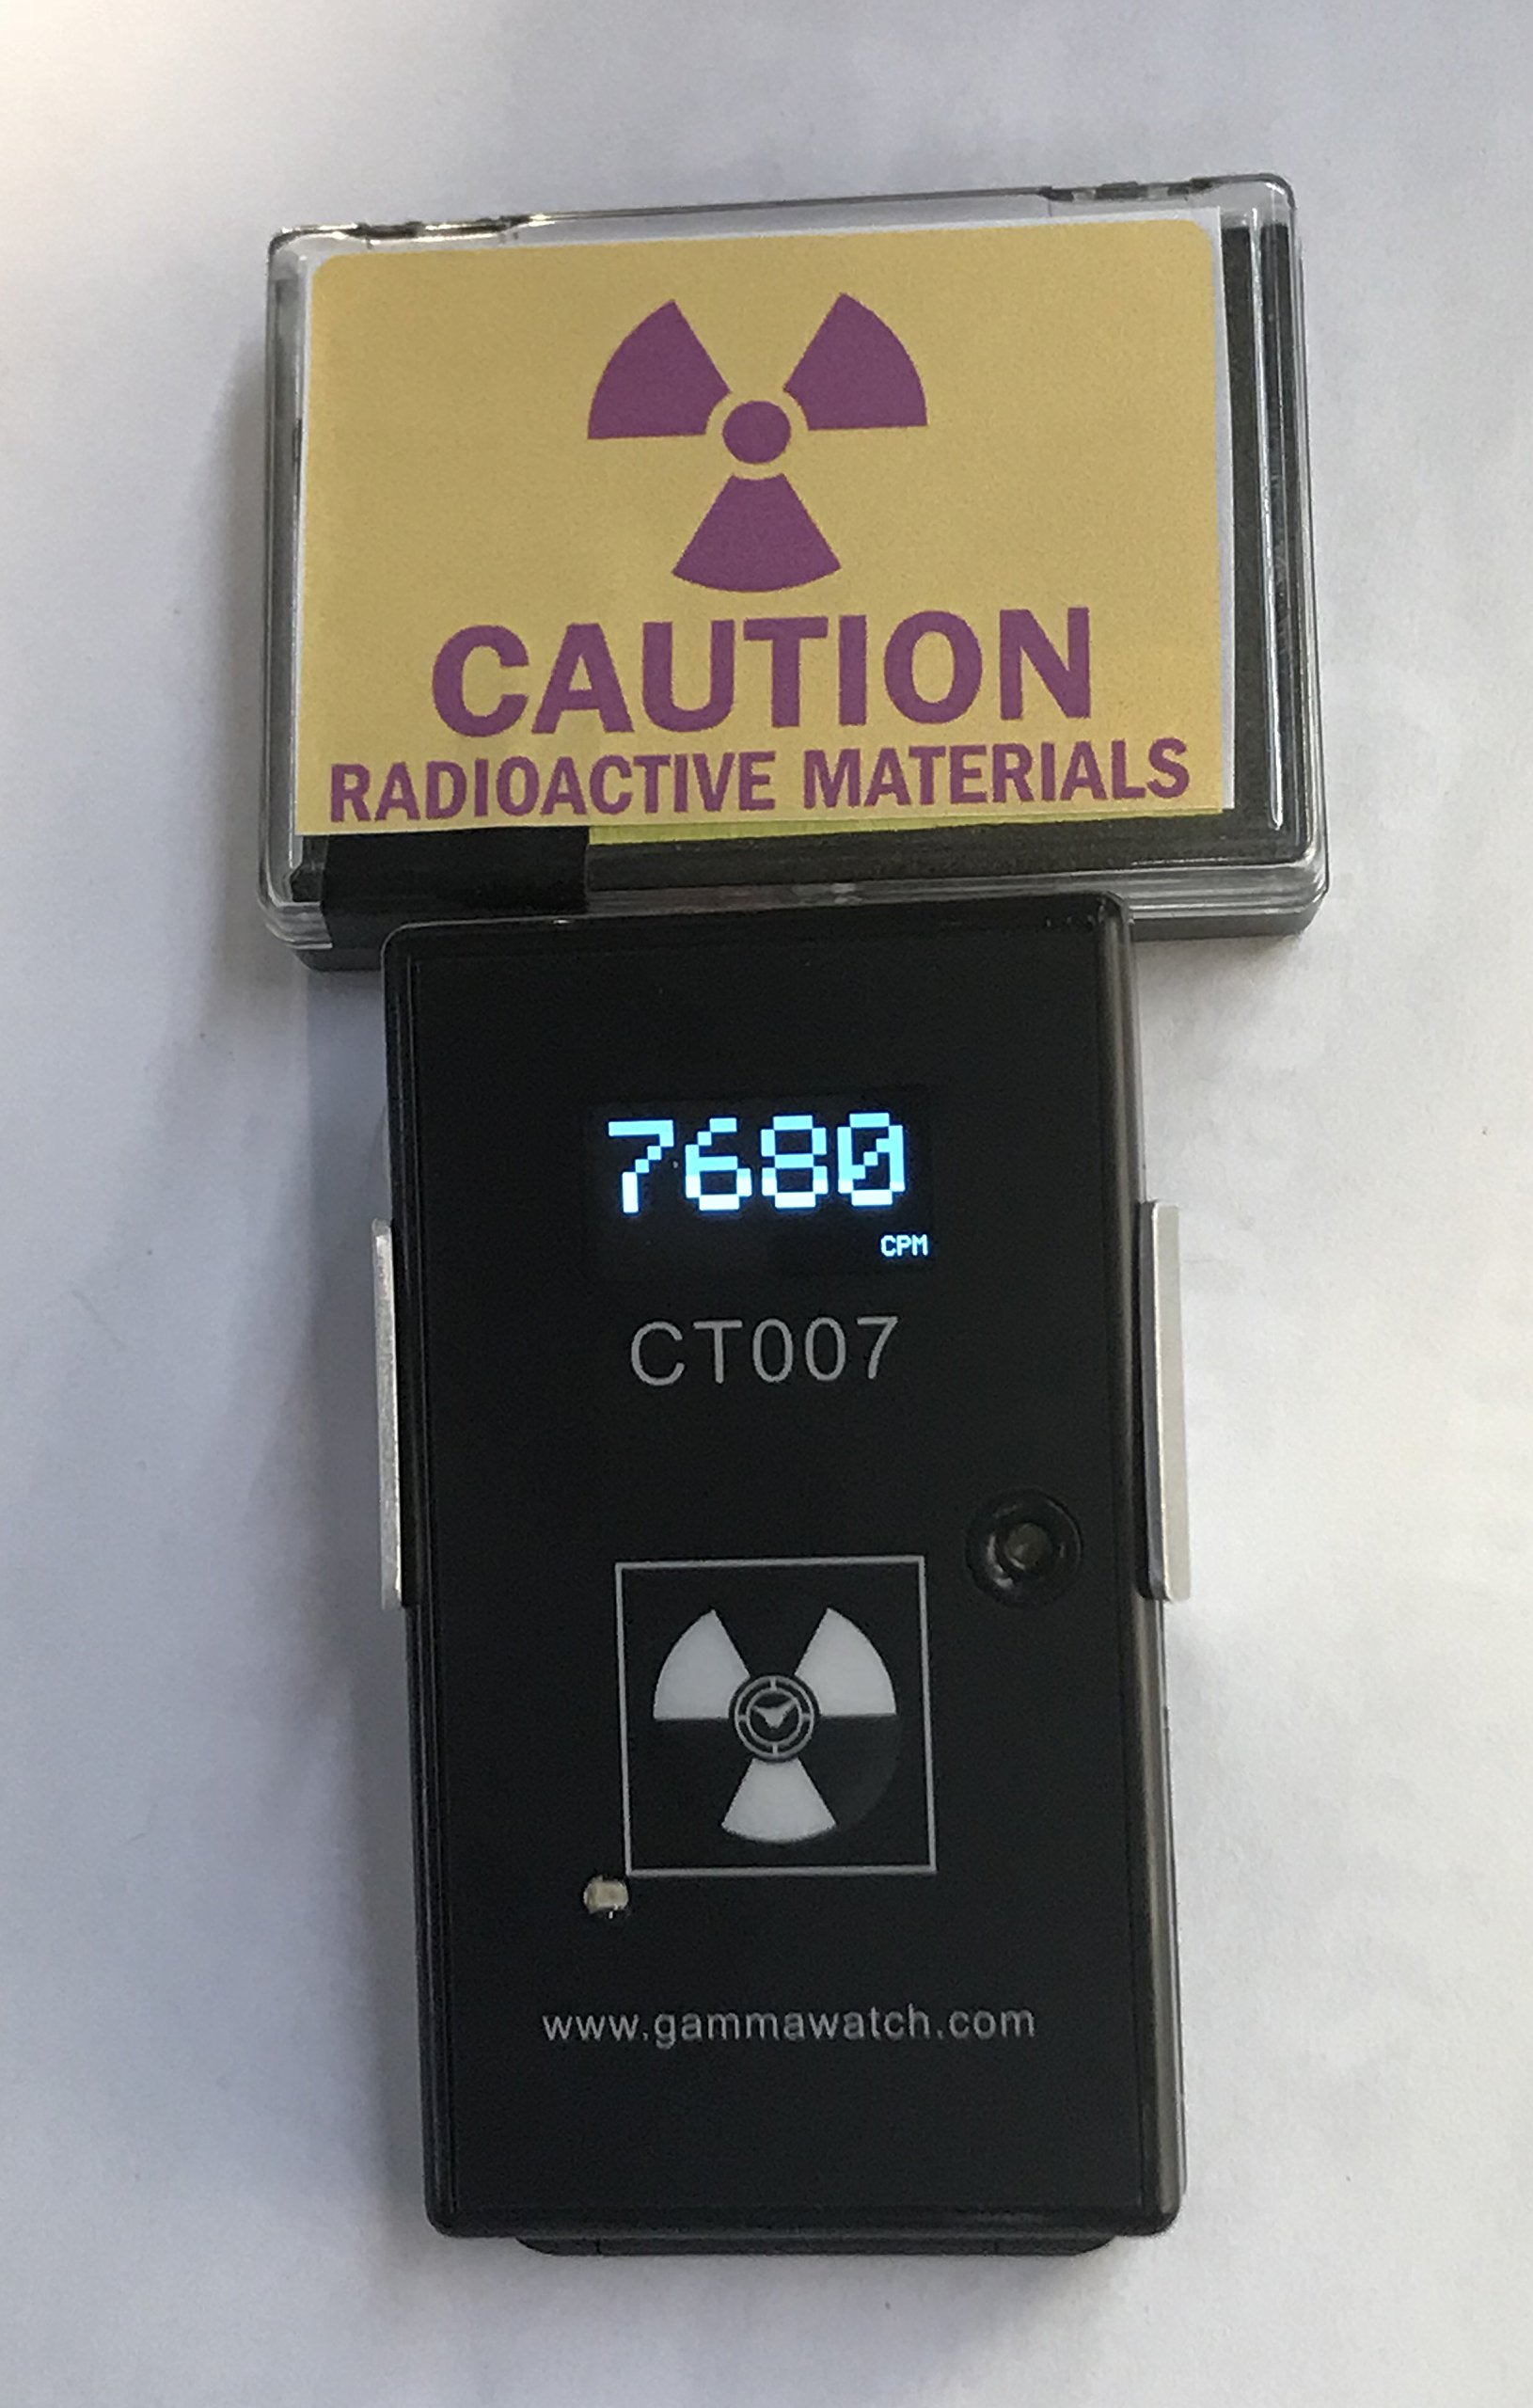 CT007-F Radiation and Radioactive Contamination Detector - Complete Alpha, Beta, Gamma Detection - Bluetooth 4.0 by Environmental Instruments Canada Inc. (Image #6)